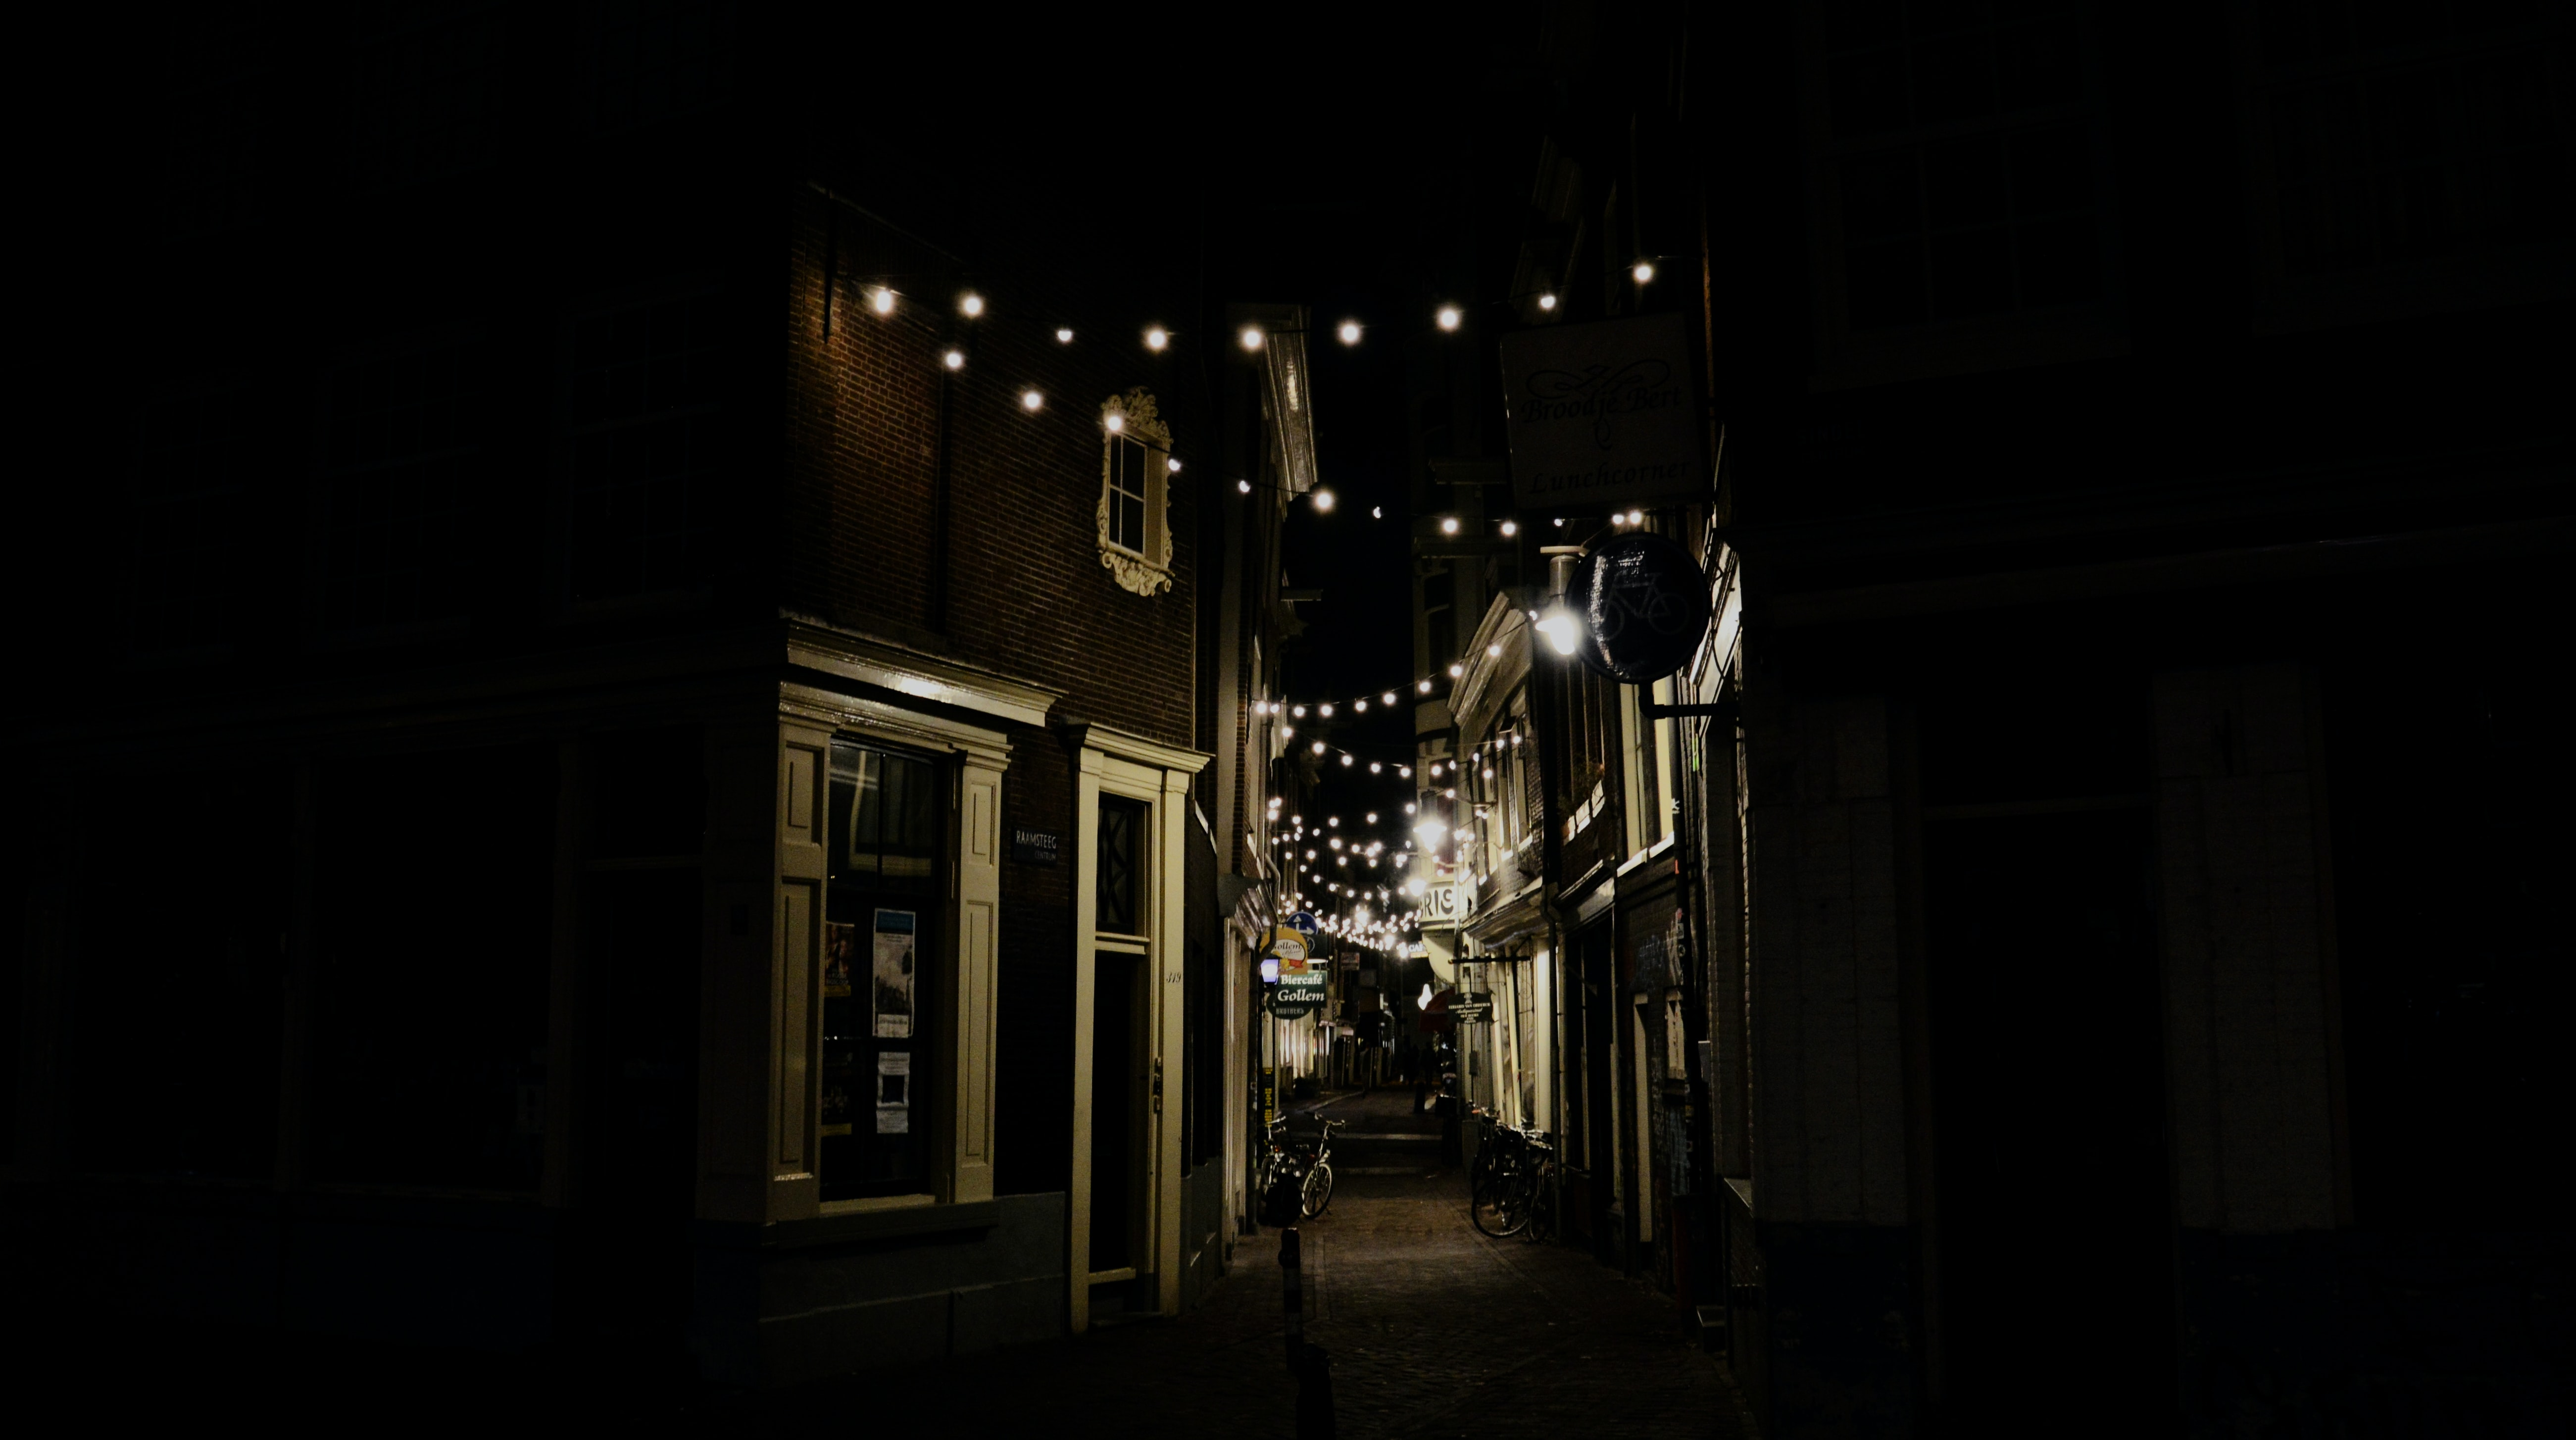 Faint lights in a dark alley in Amsterdam